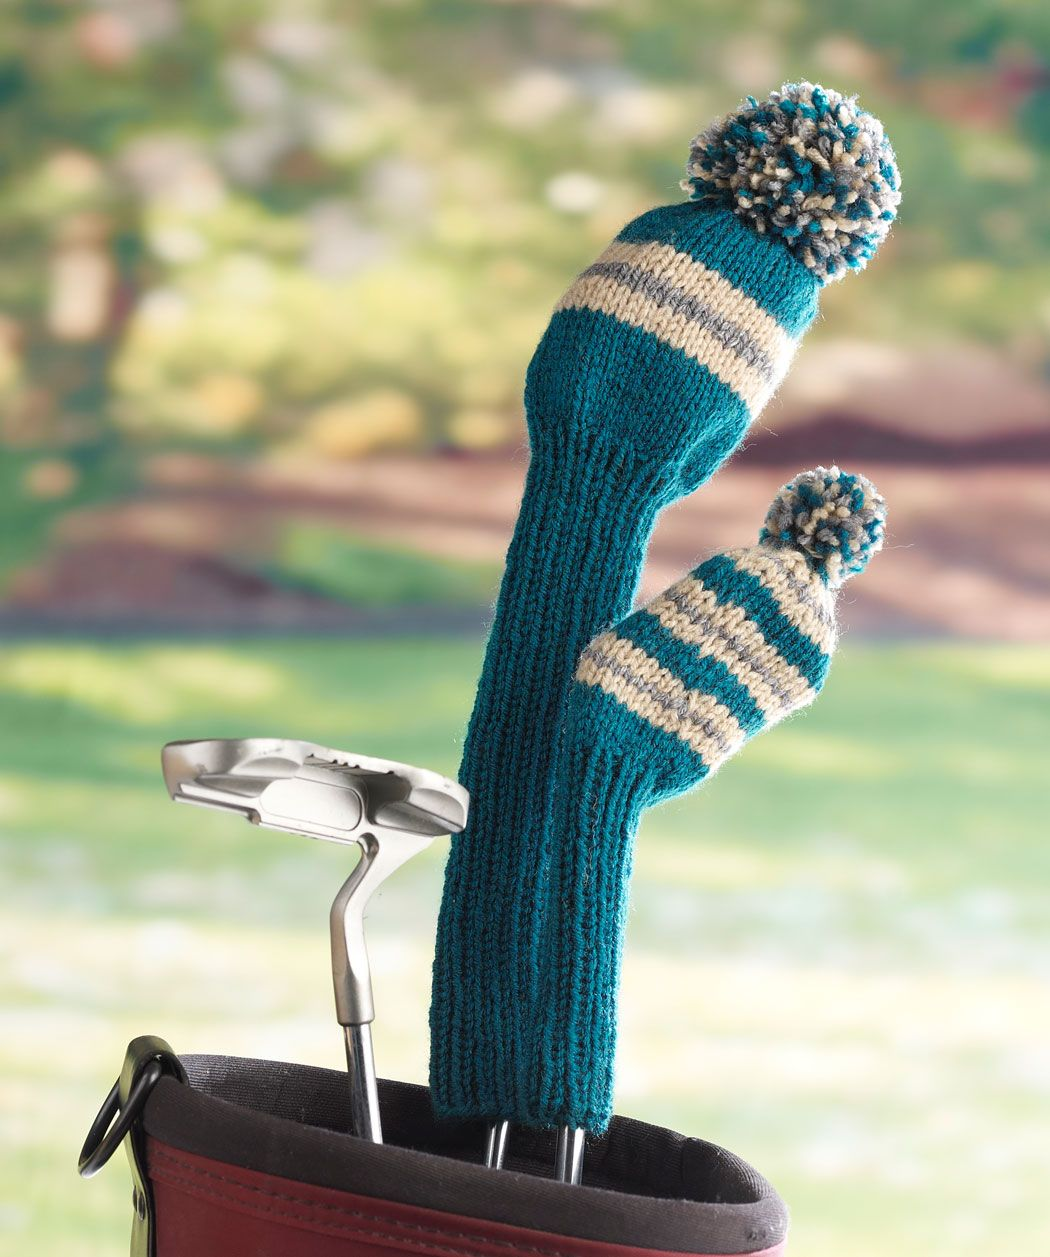 Knit golf head covers pattern a knitting blog knitting knit golf head covers pattern a knitting blog bankloansurffo Gallery